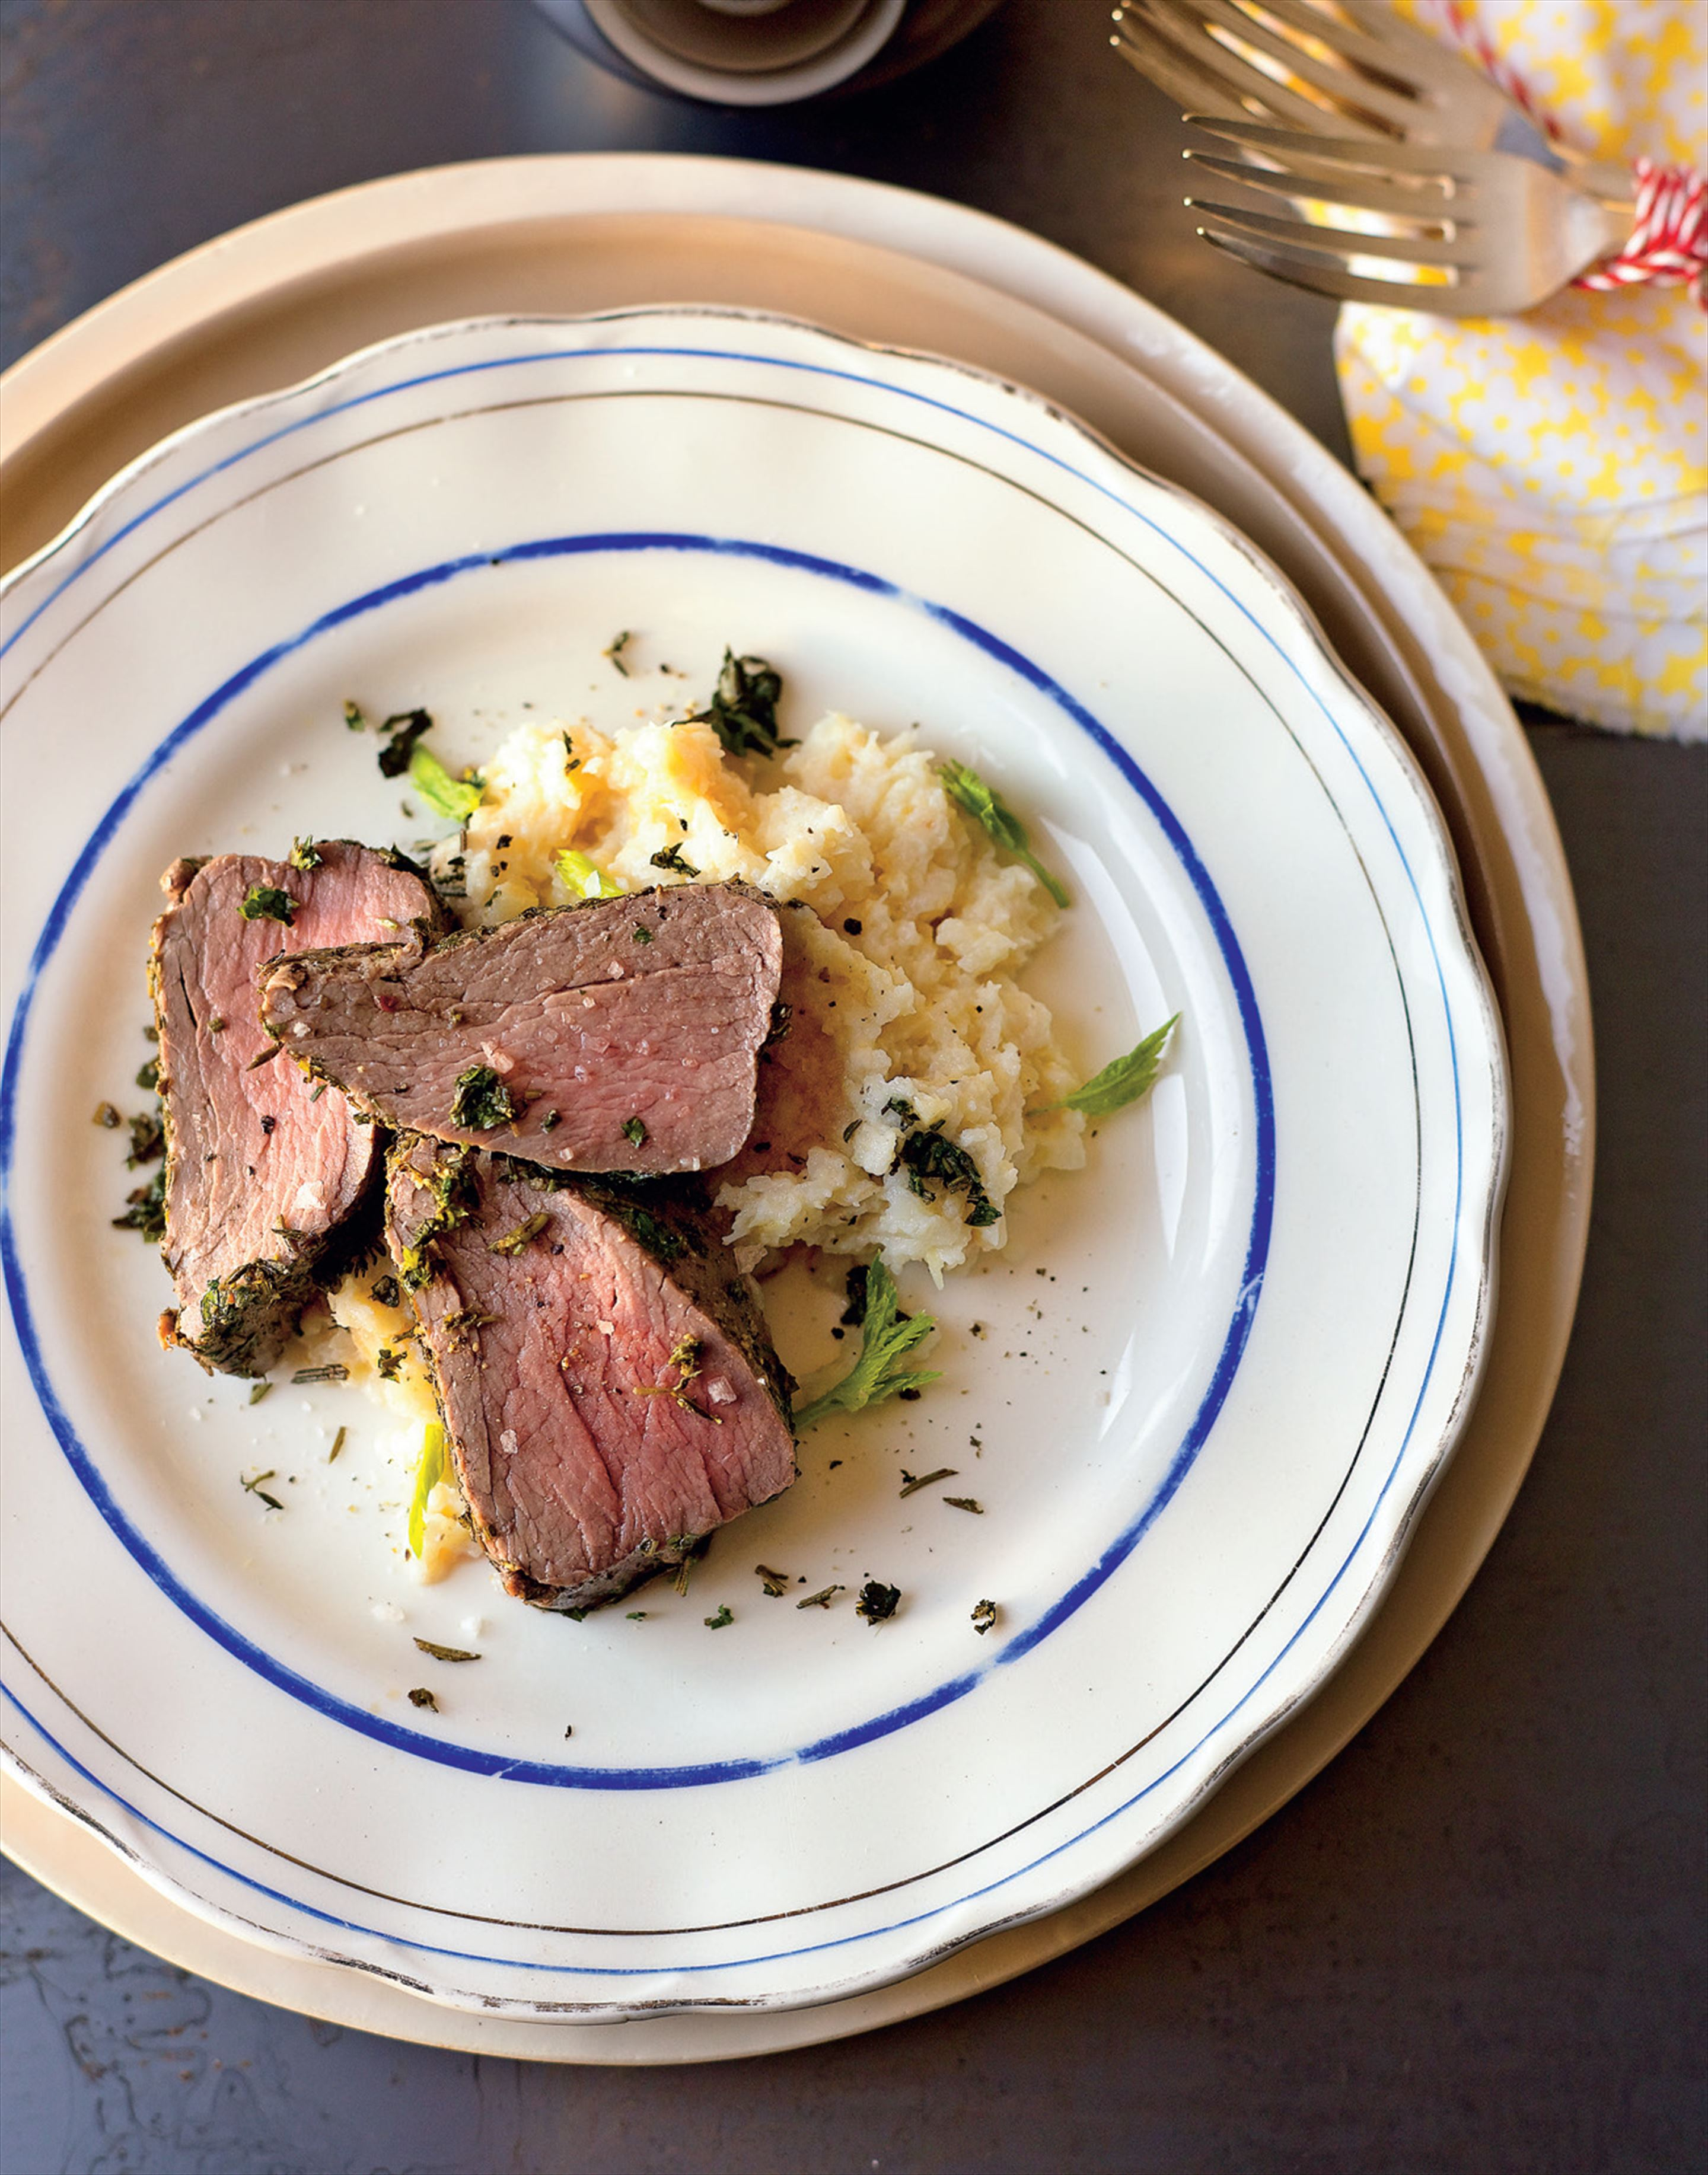 Herb and peppered eye fillet beef with celeriac and horseradish mash